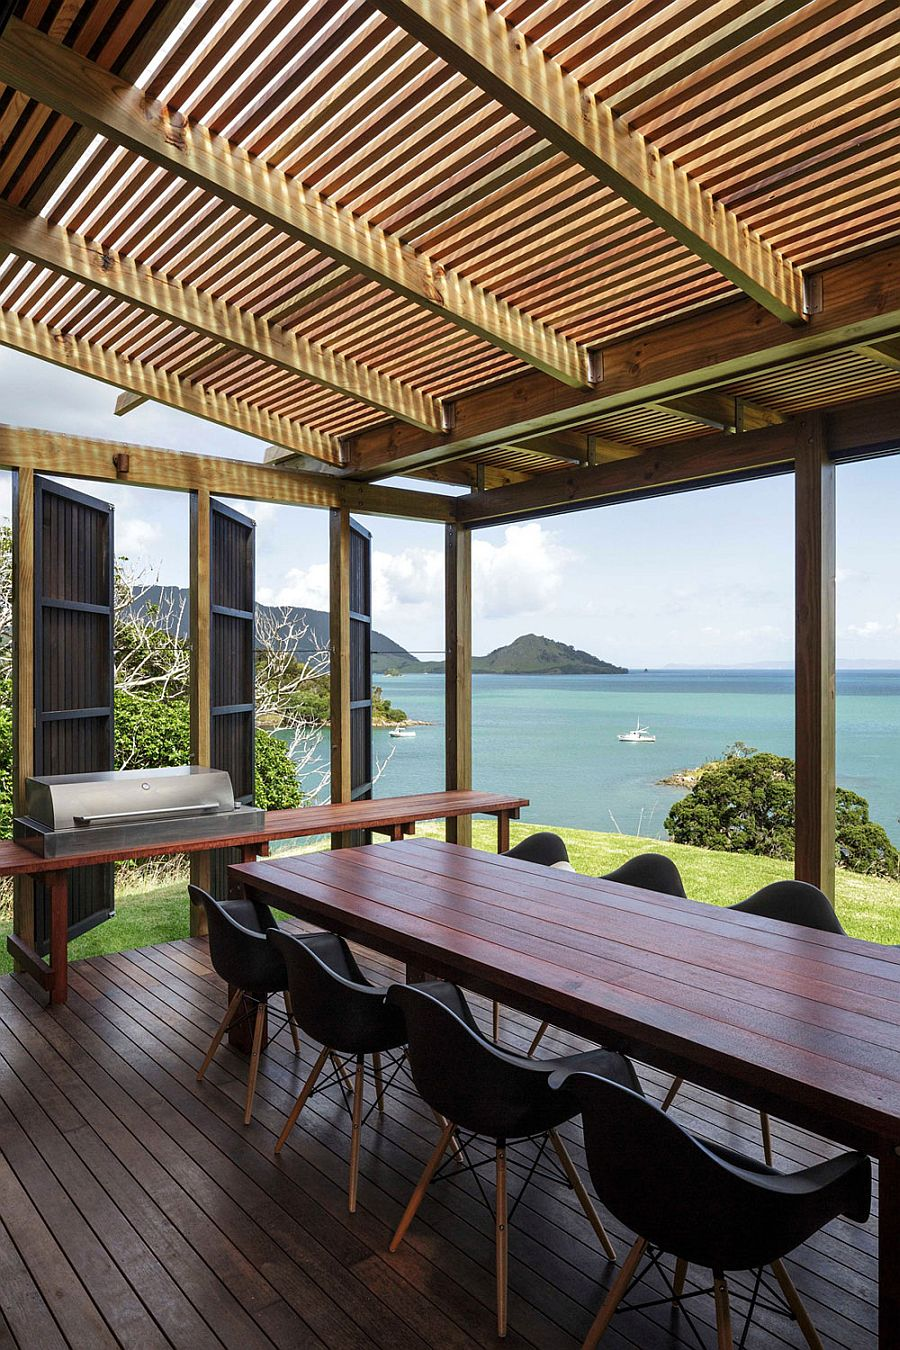 Outdoor dining space under pergola with stunning sea views in New Zealand